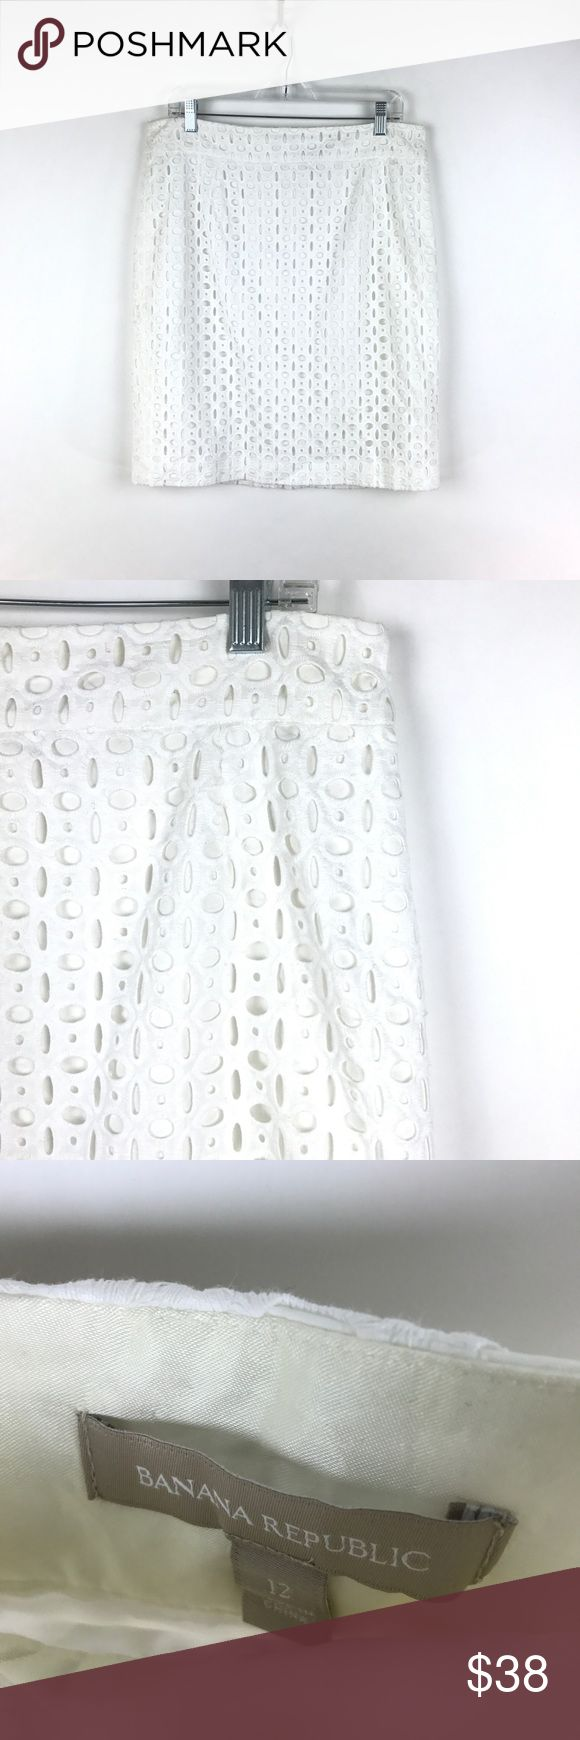 """Banana Republic Floral Eyelet Lace Skirt 12 413 Banana Republic Women's Sz 12 Floral Eyelet Lace Straight Pencil Skirt White 413  Measurements: Waist:  17"""" Flat Across Length: 22"""" Long  In good preowned condition with no known flaws and light overall wear. Banana Republic Skirts Pencil"""